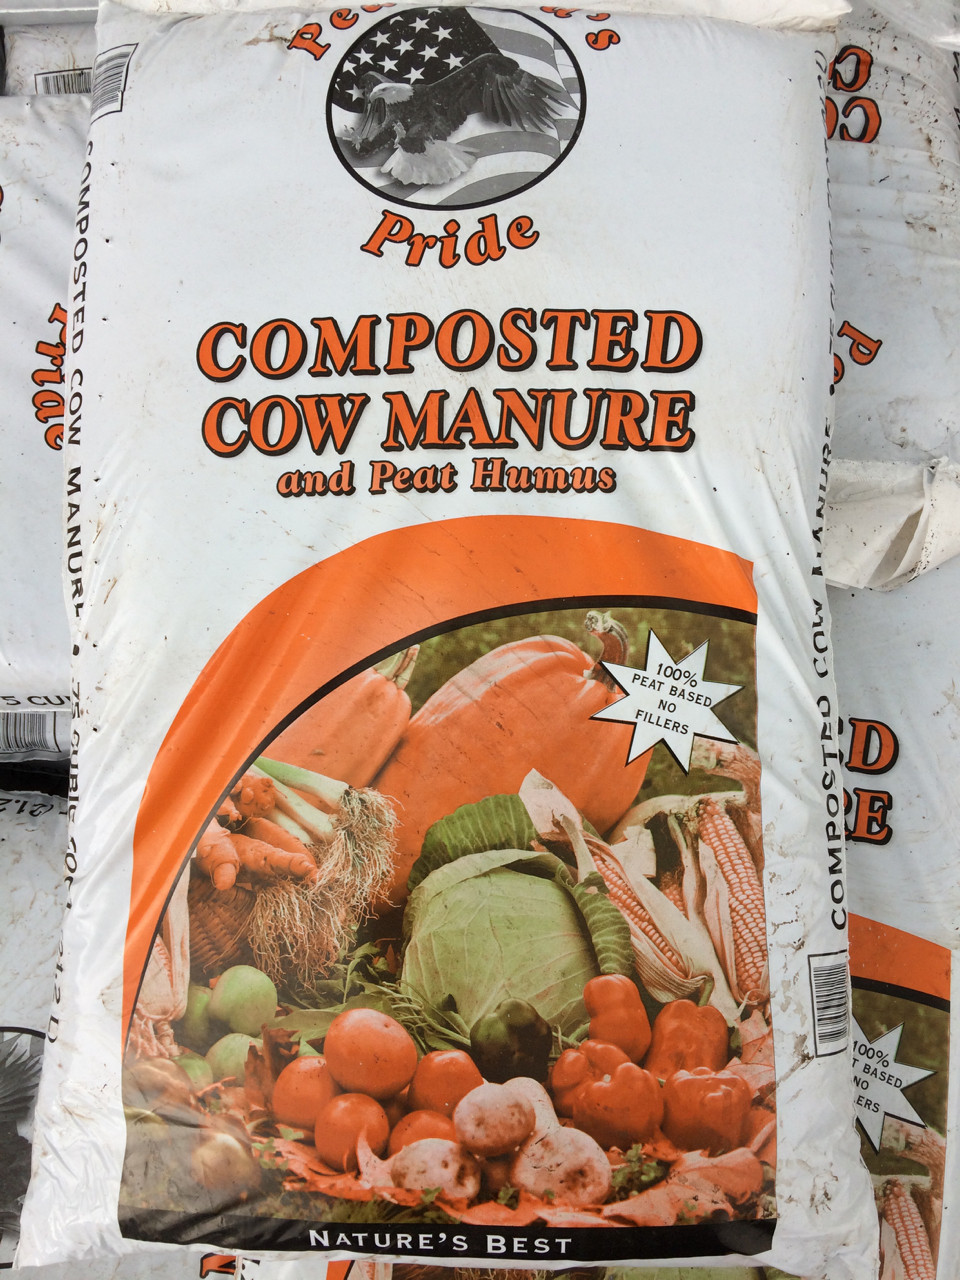 Mixture of cow manure, peat and organic humus derived from peat.